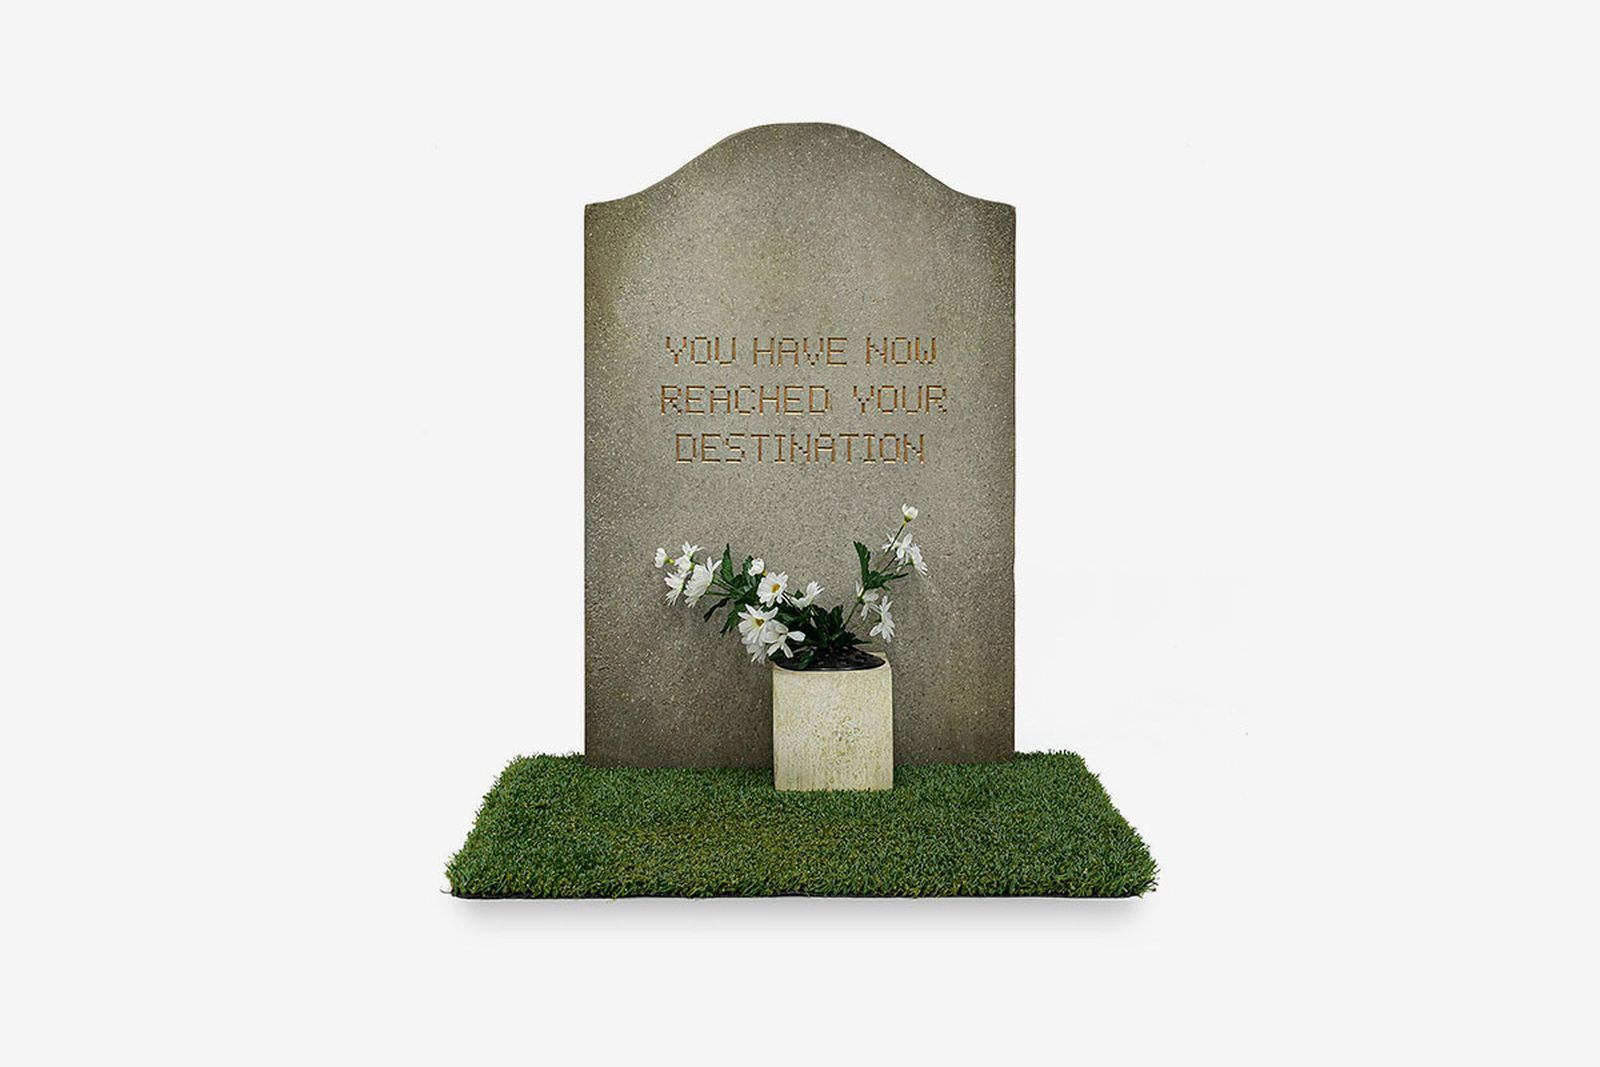 Banksy Gross Domestic Product tombstone